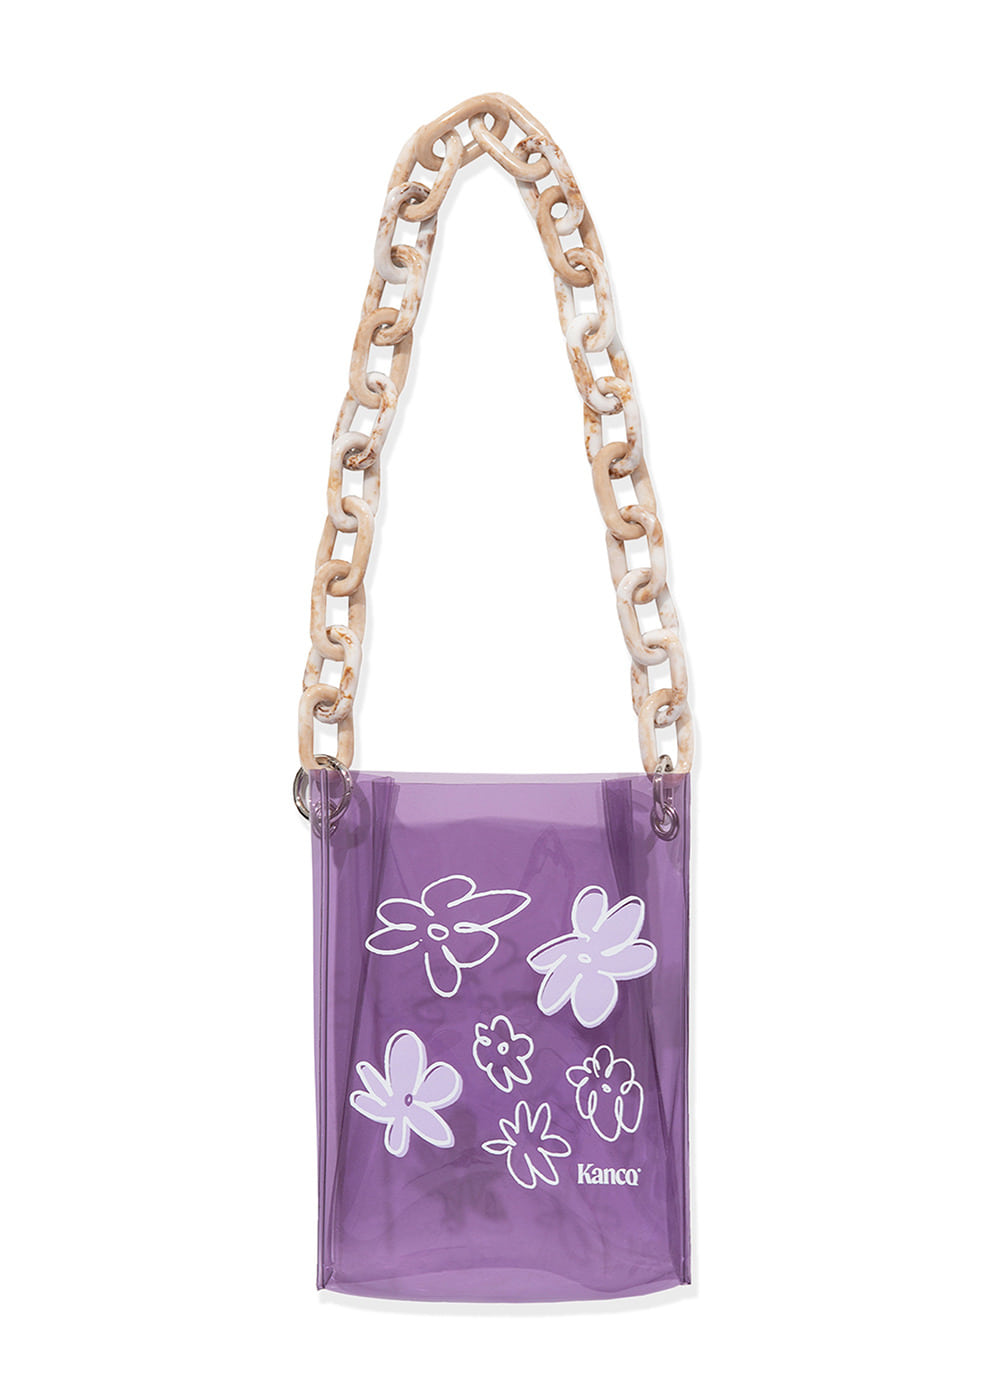 KANCO PVC TOTE BAG purple